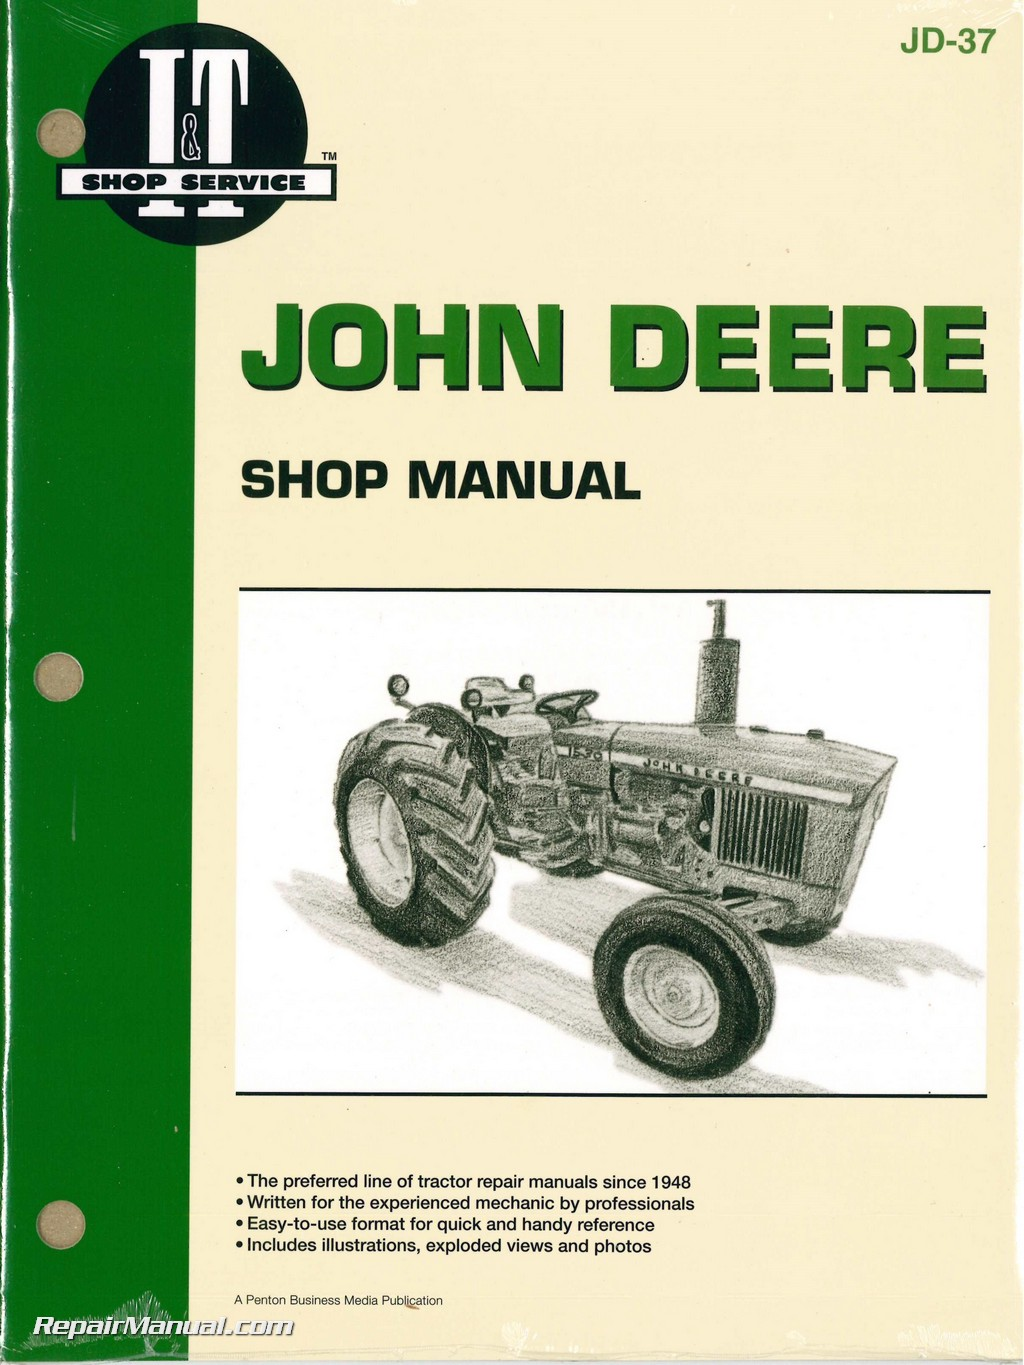 John Deere 1020 Wiring Harness Free Download Wiring Diagrams John Deere  2020 Wiring Schematic John Deere 1020 Wiring Harness